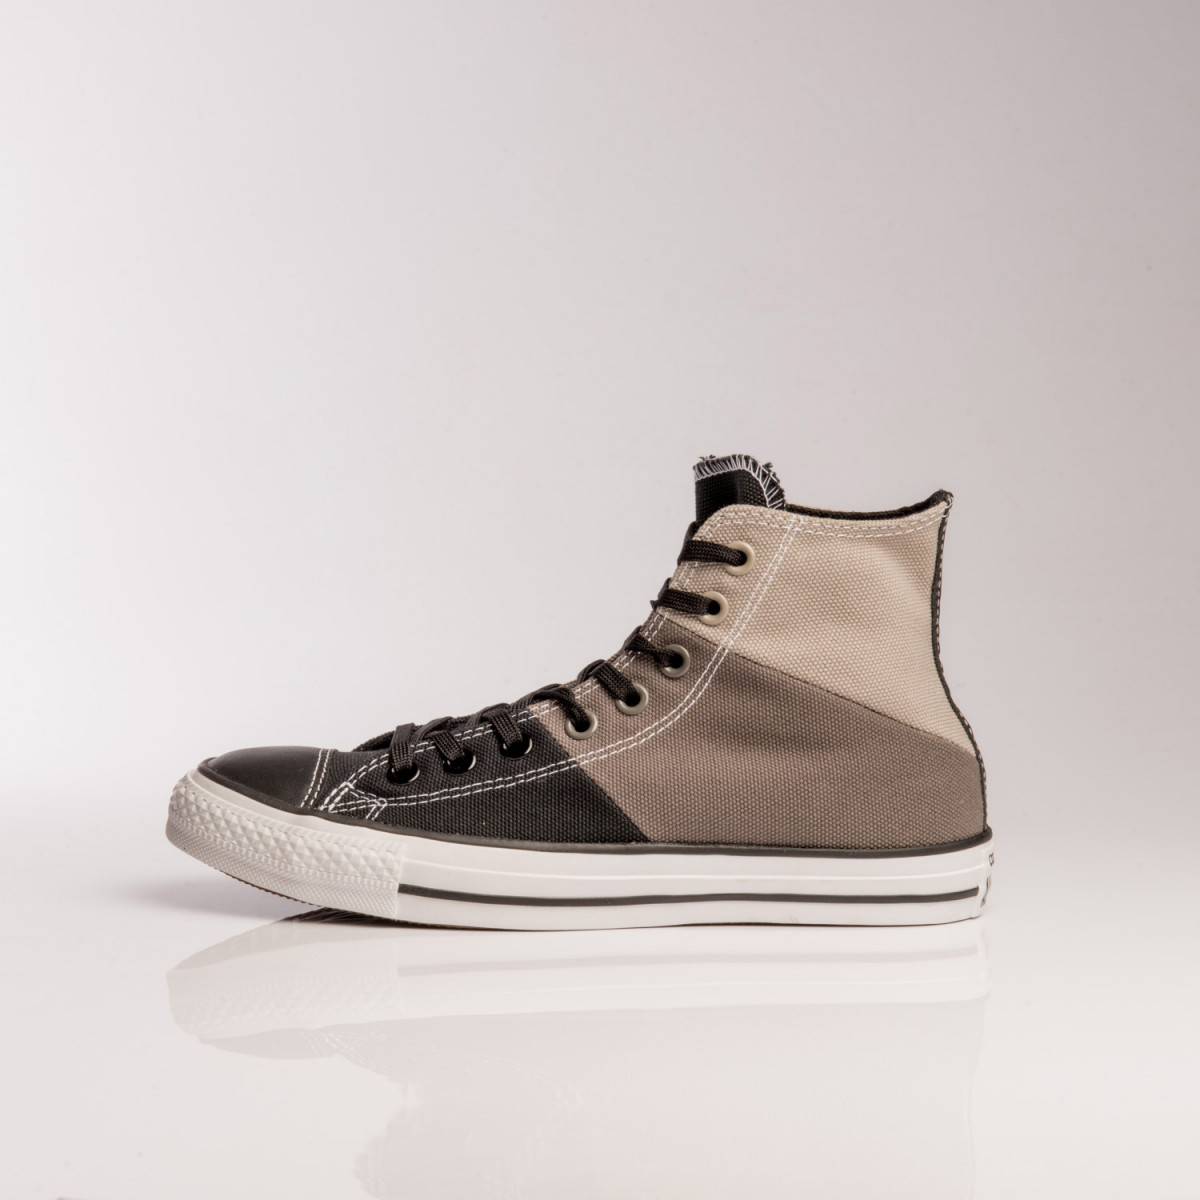 ZAPATILLAS CONVERSE CHUCK TAYLOR ALL STAR TRI-PANEL